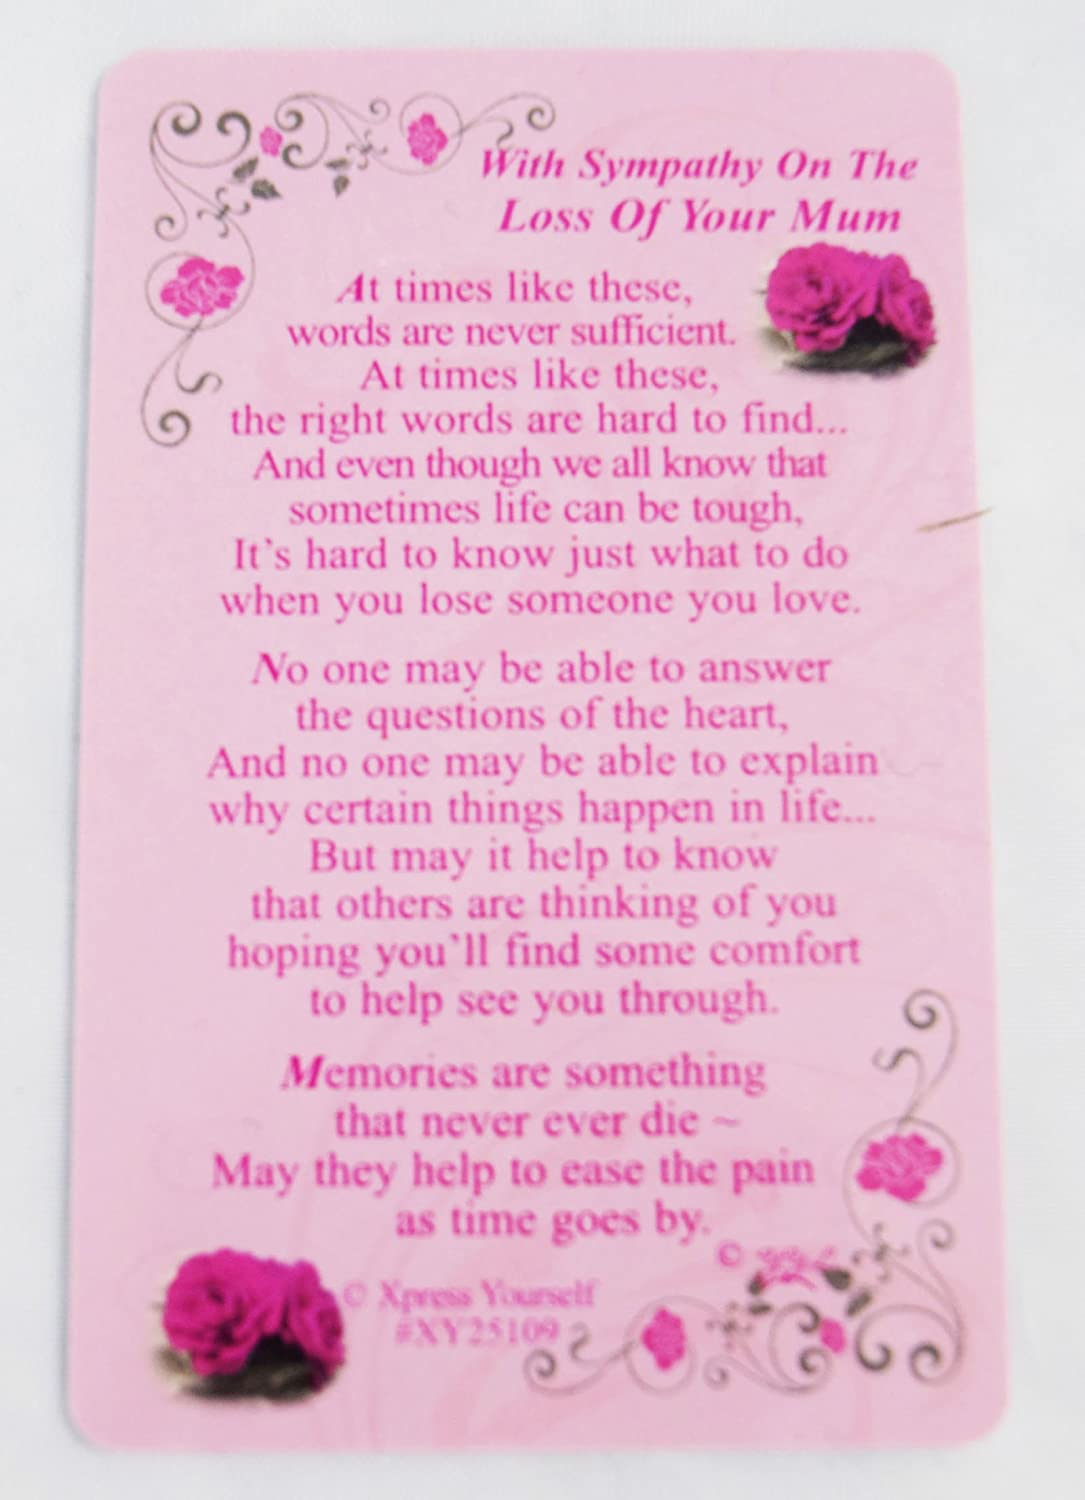 With Sympathy Loss Of Your Mum Wallet Card Keepsake Grave Thinking